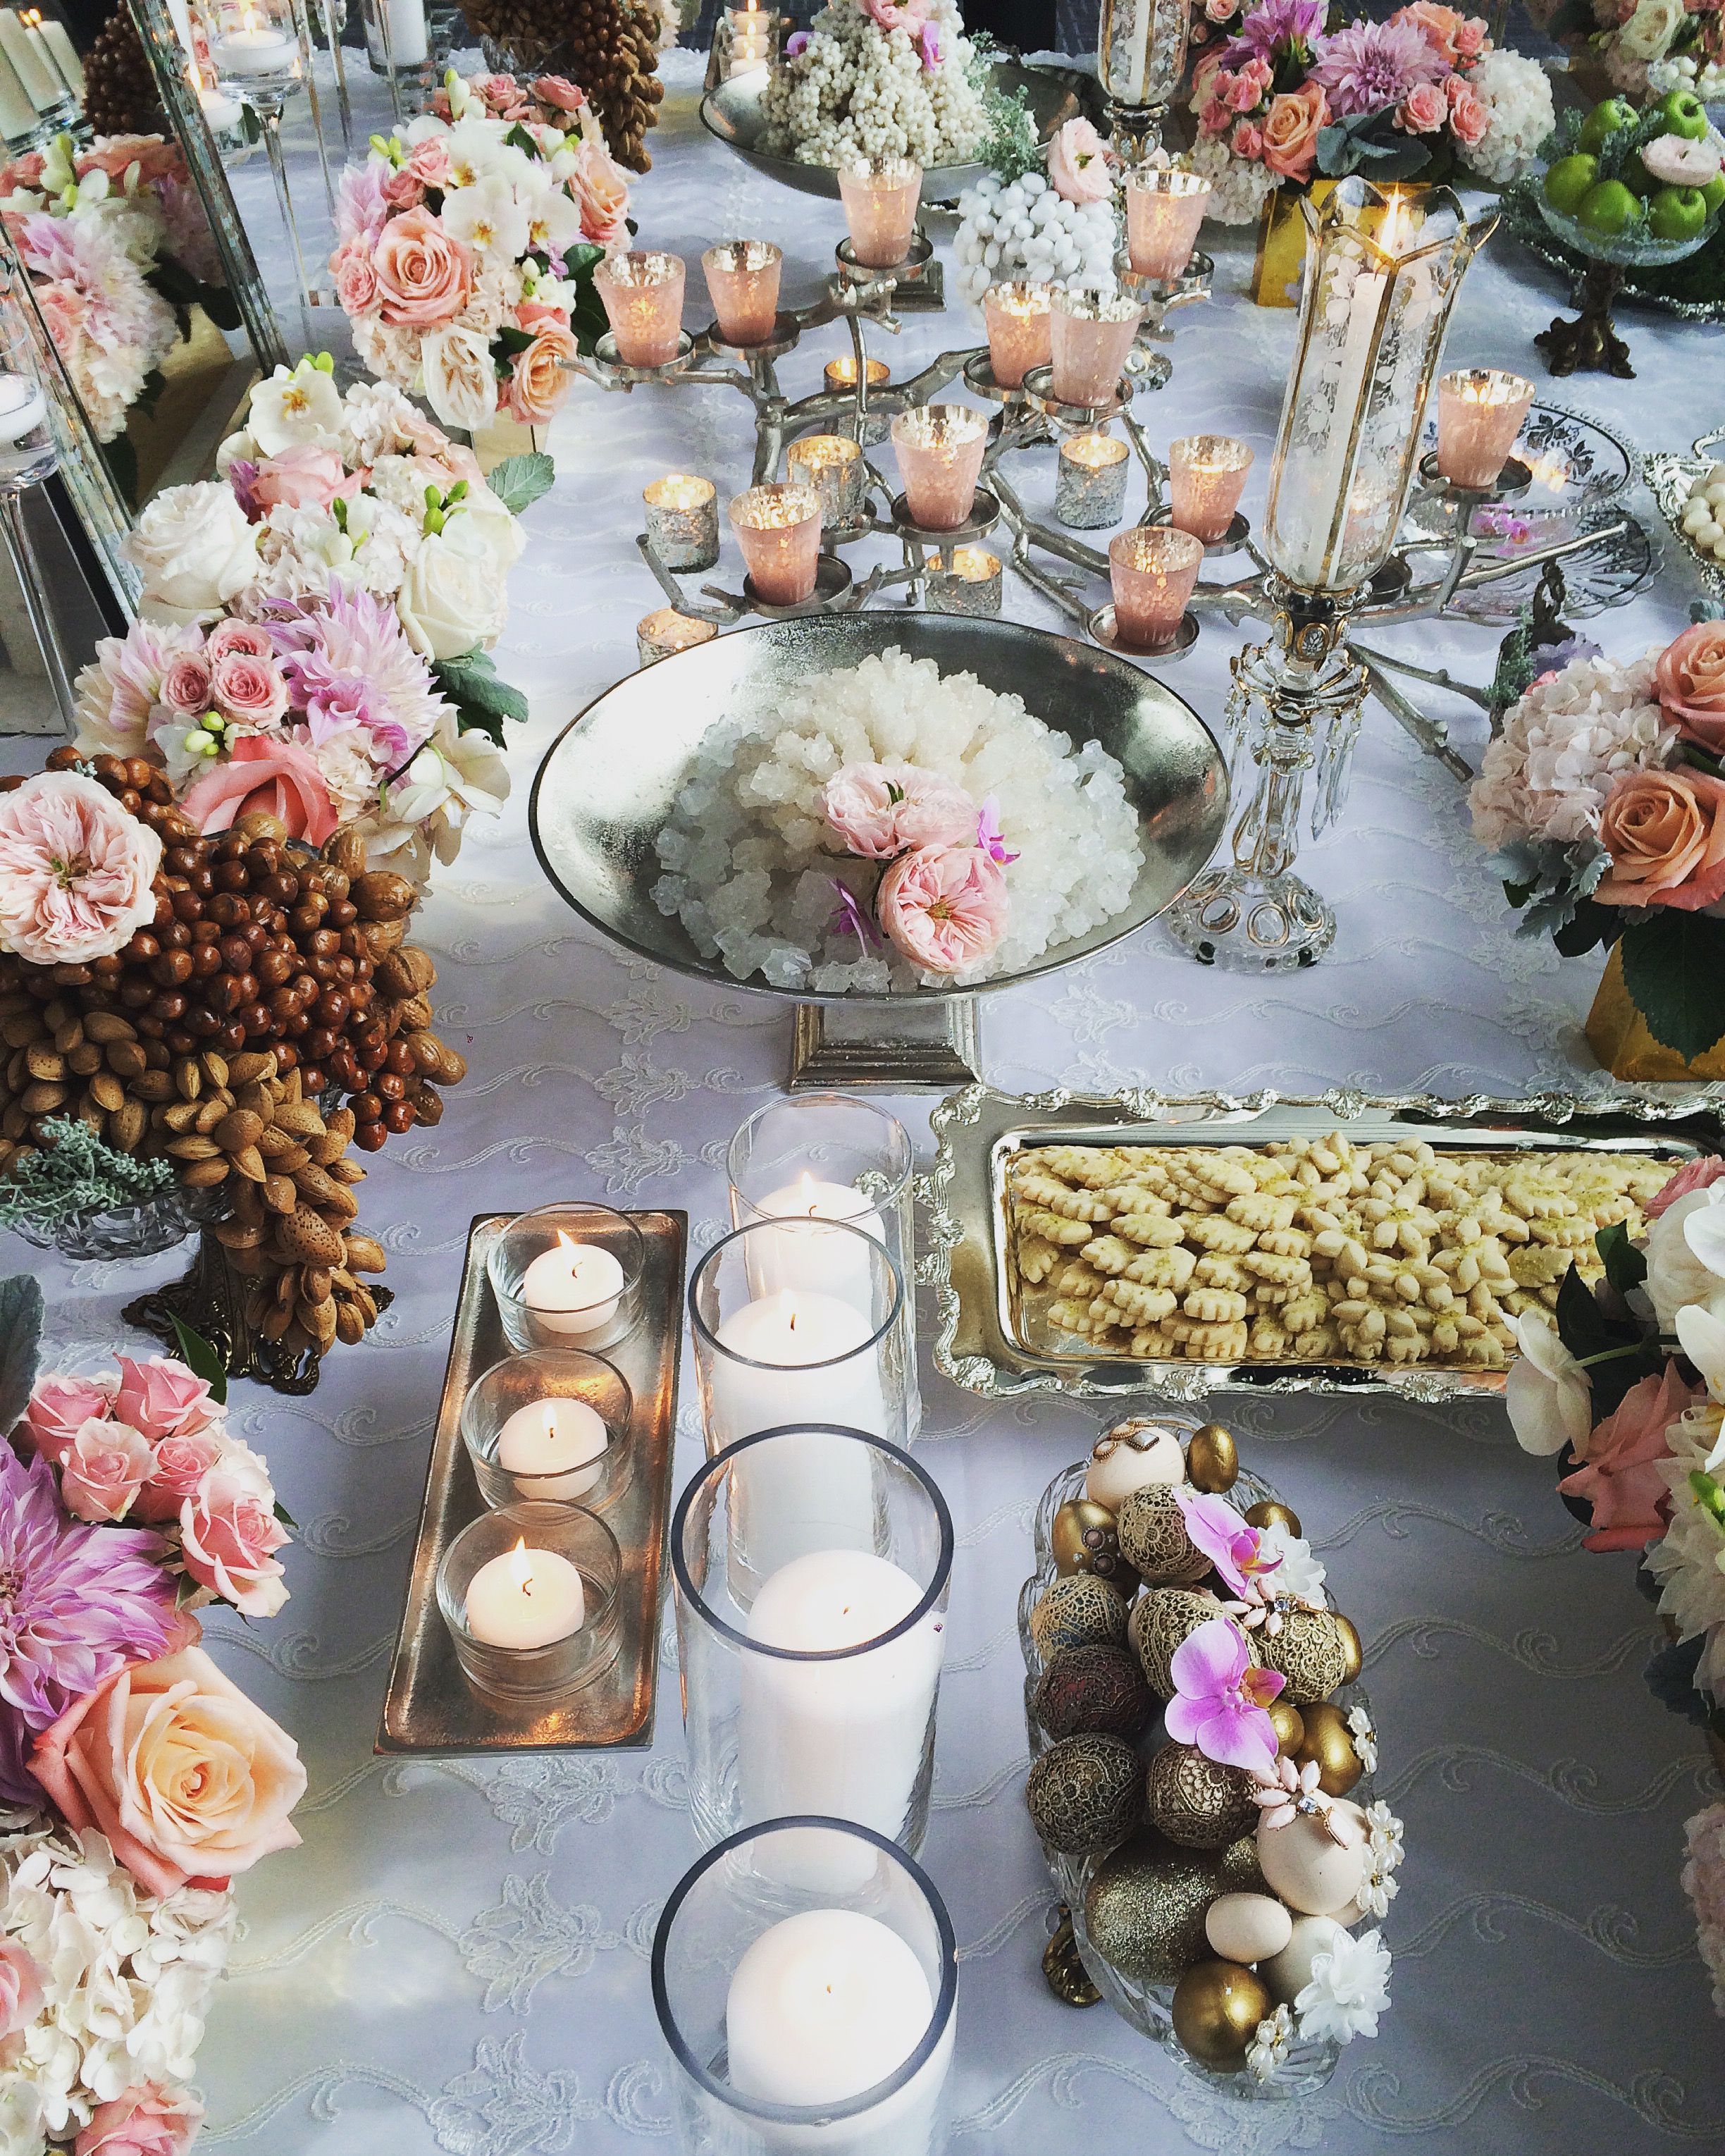 Bits And Blooms Inc Sofreh Aghd Persian Wedding Four